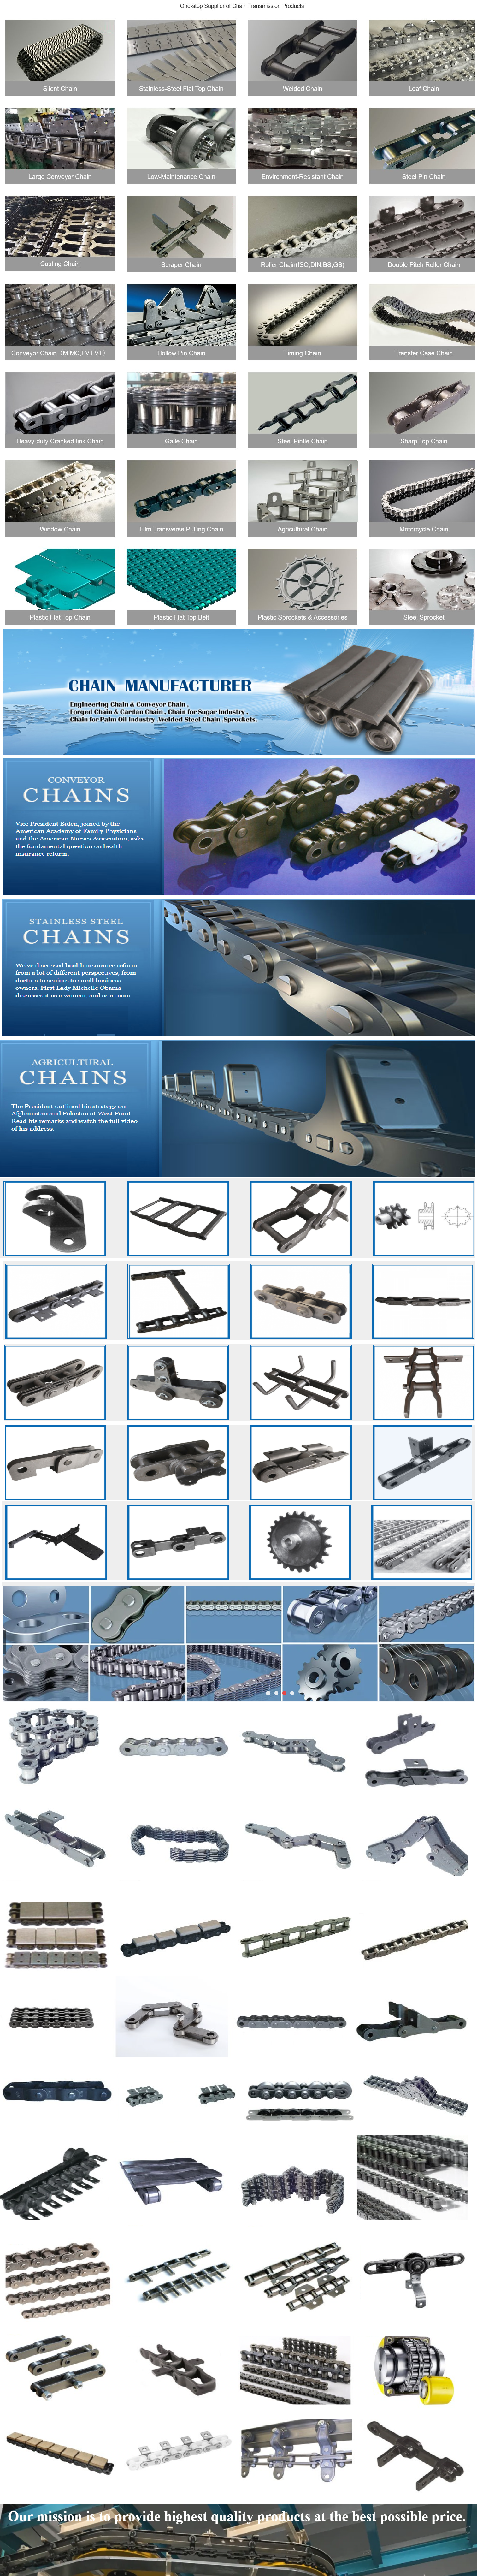 Electro  made in China - replacement parts - redler conveyor  in Nashville United States  Galvanized Long Link Chain with ce certificate top quality low price